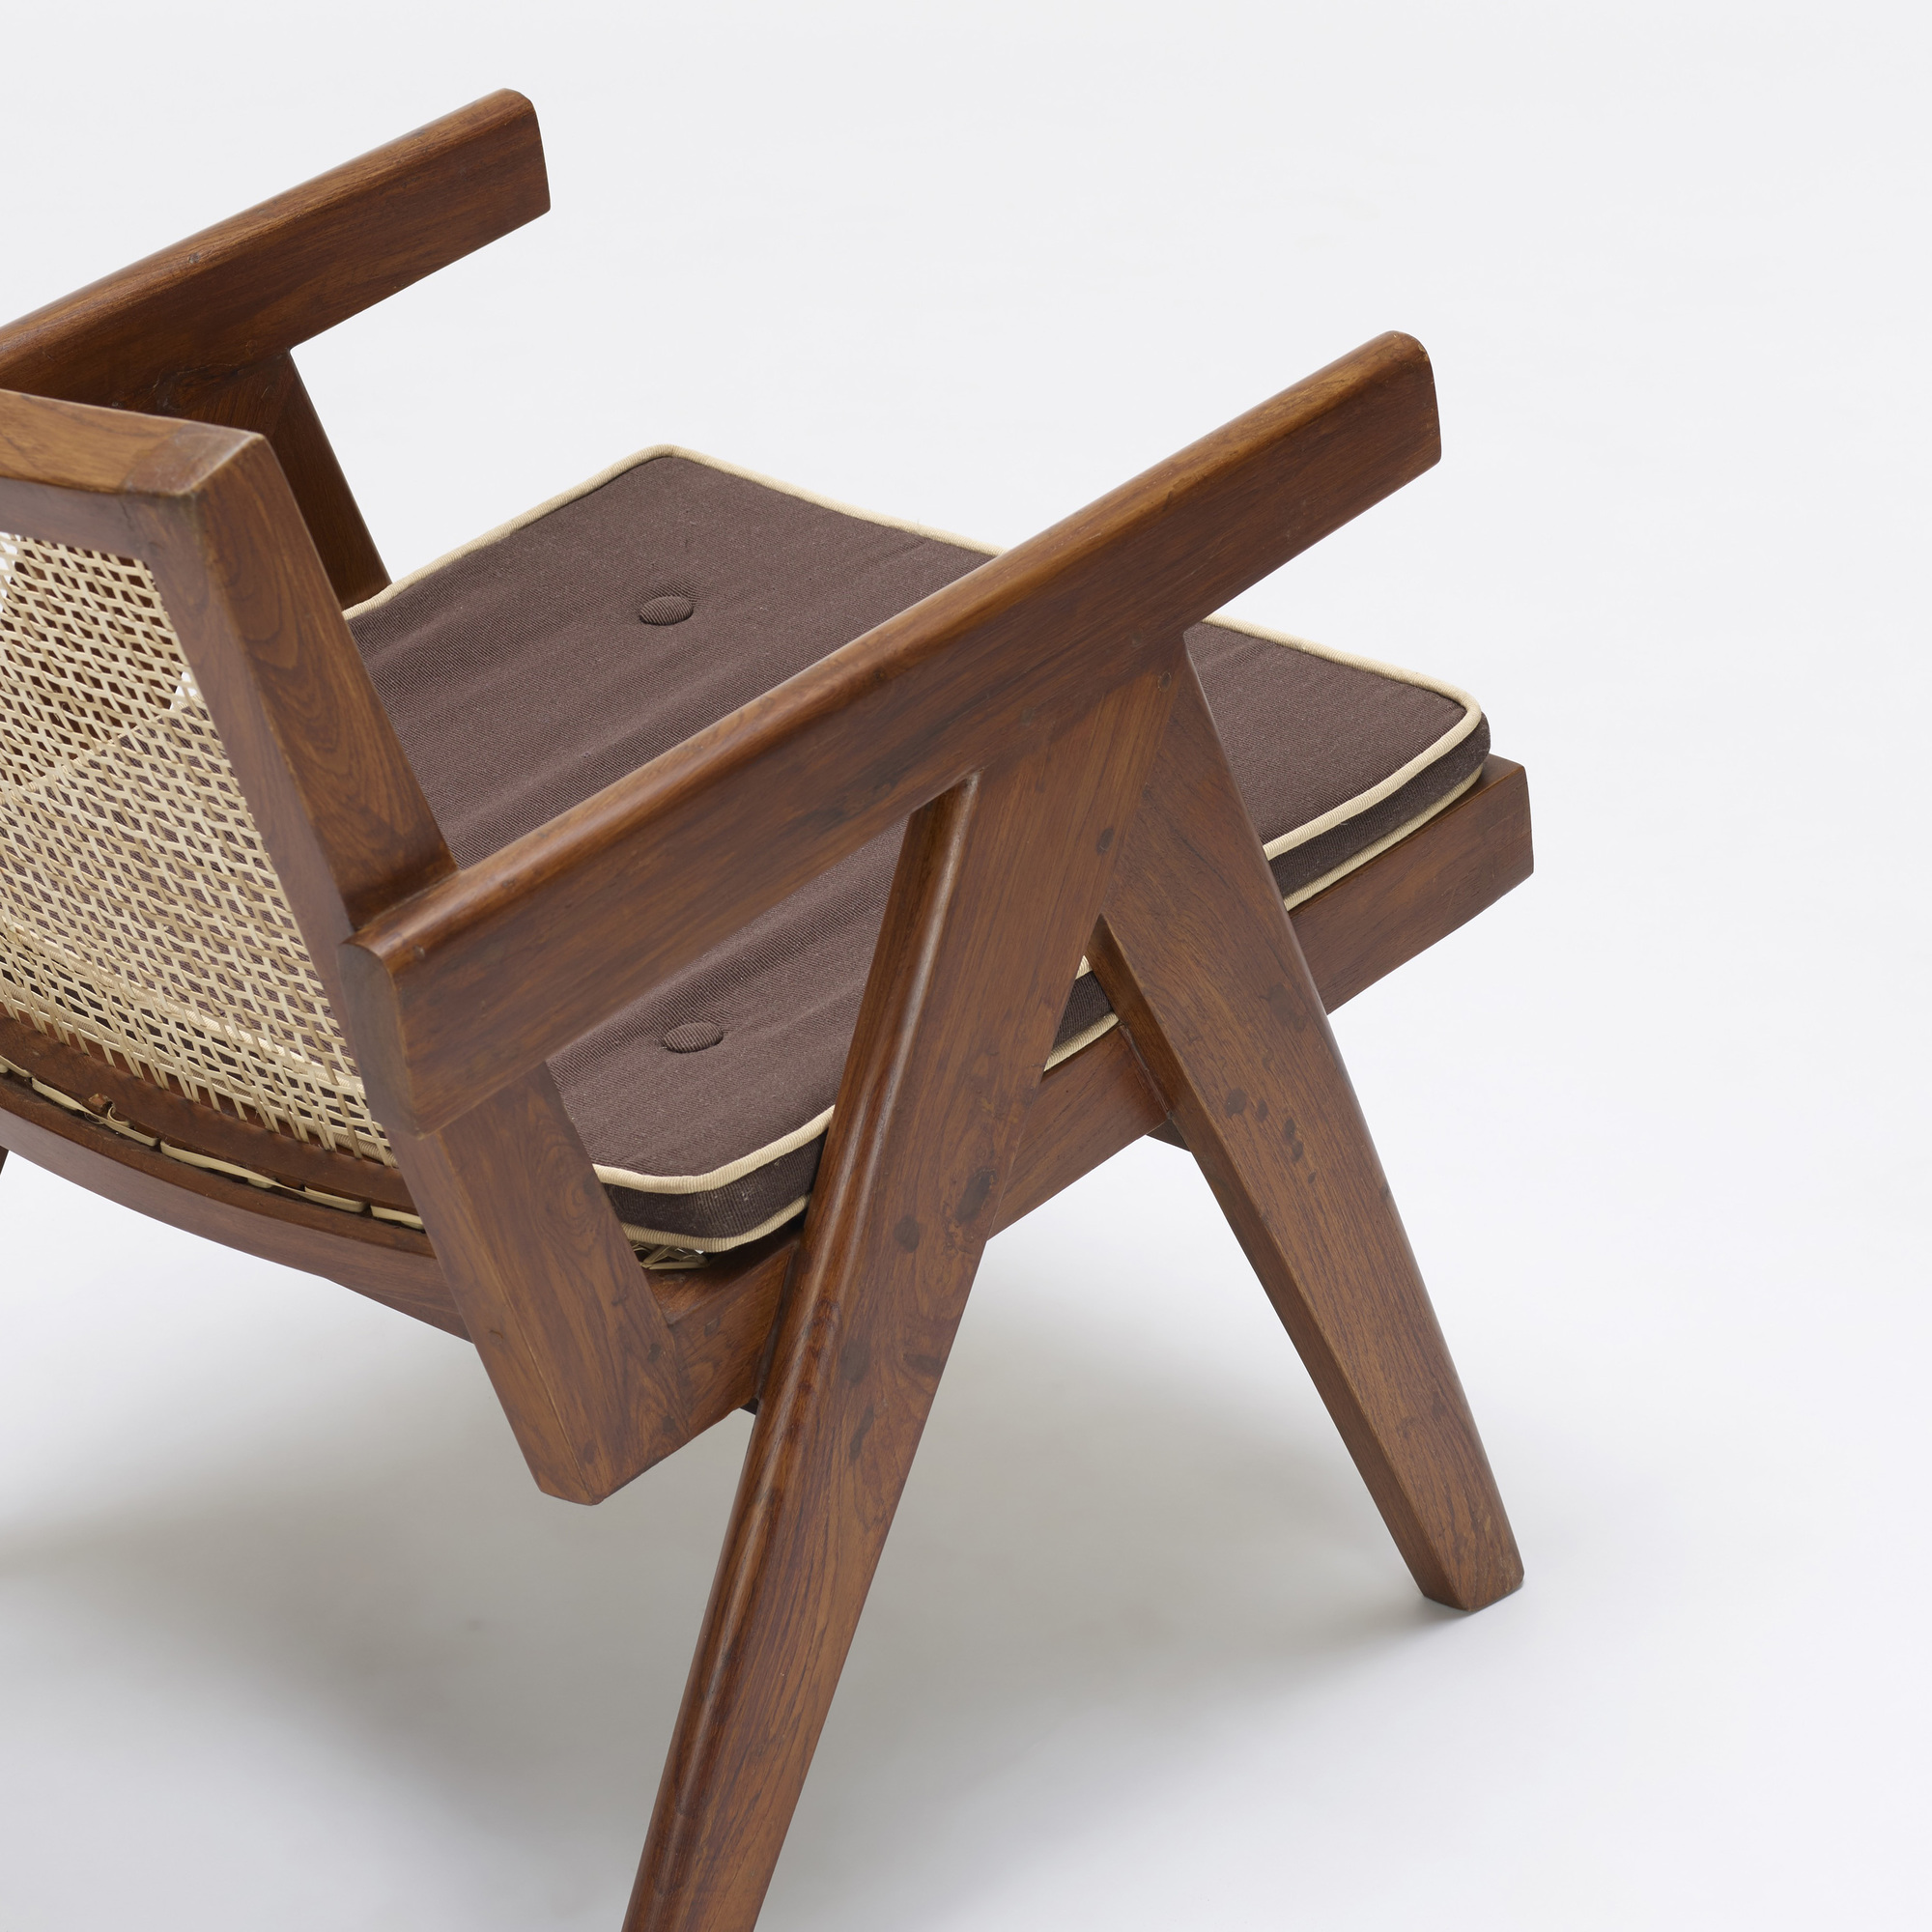 103: Pierre Jeanneret / Easy armchair from Chandigarh (3 of 4)